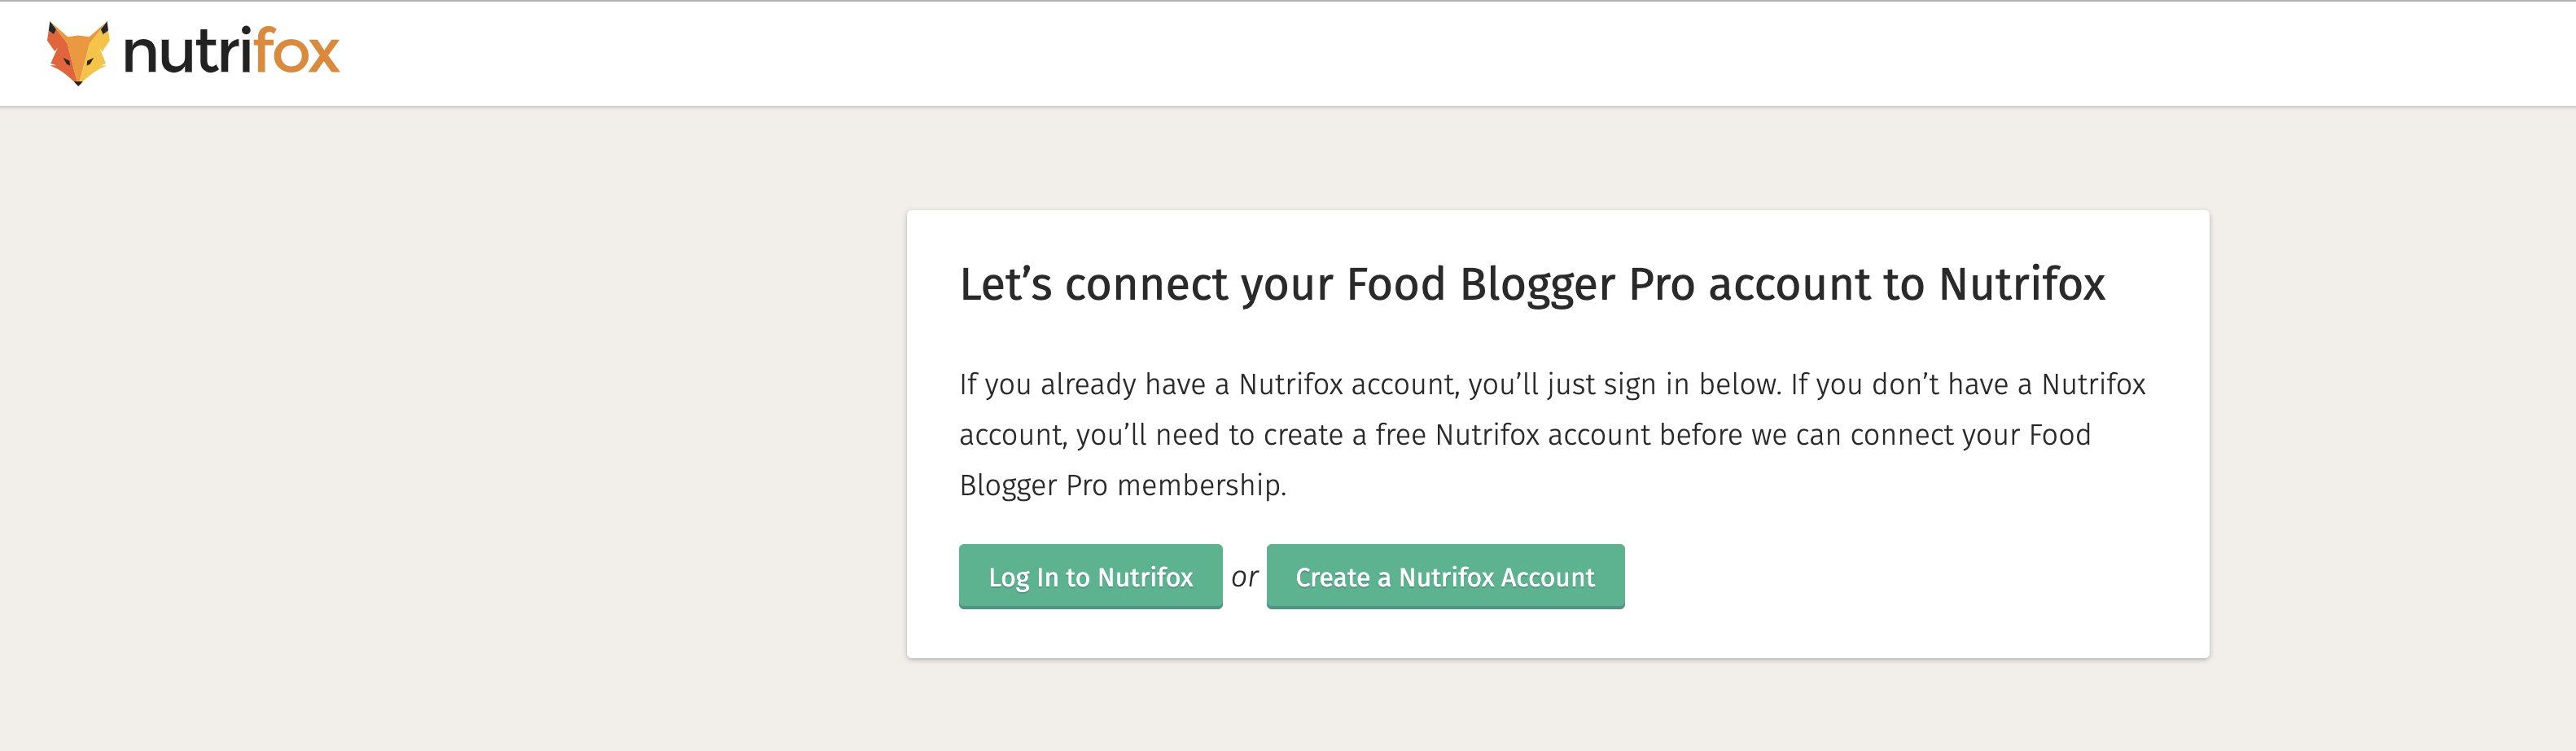 The connect FBP page on Nutrifox